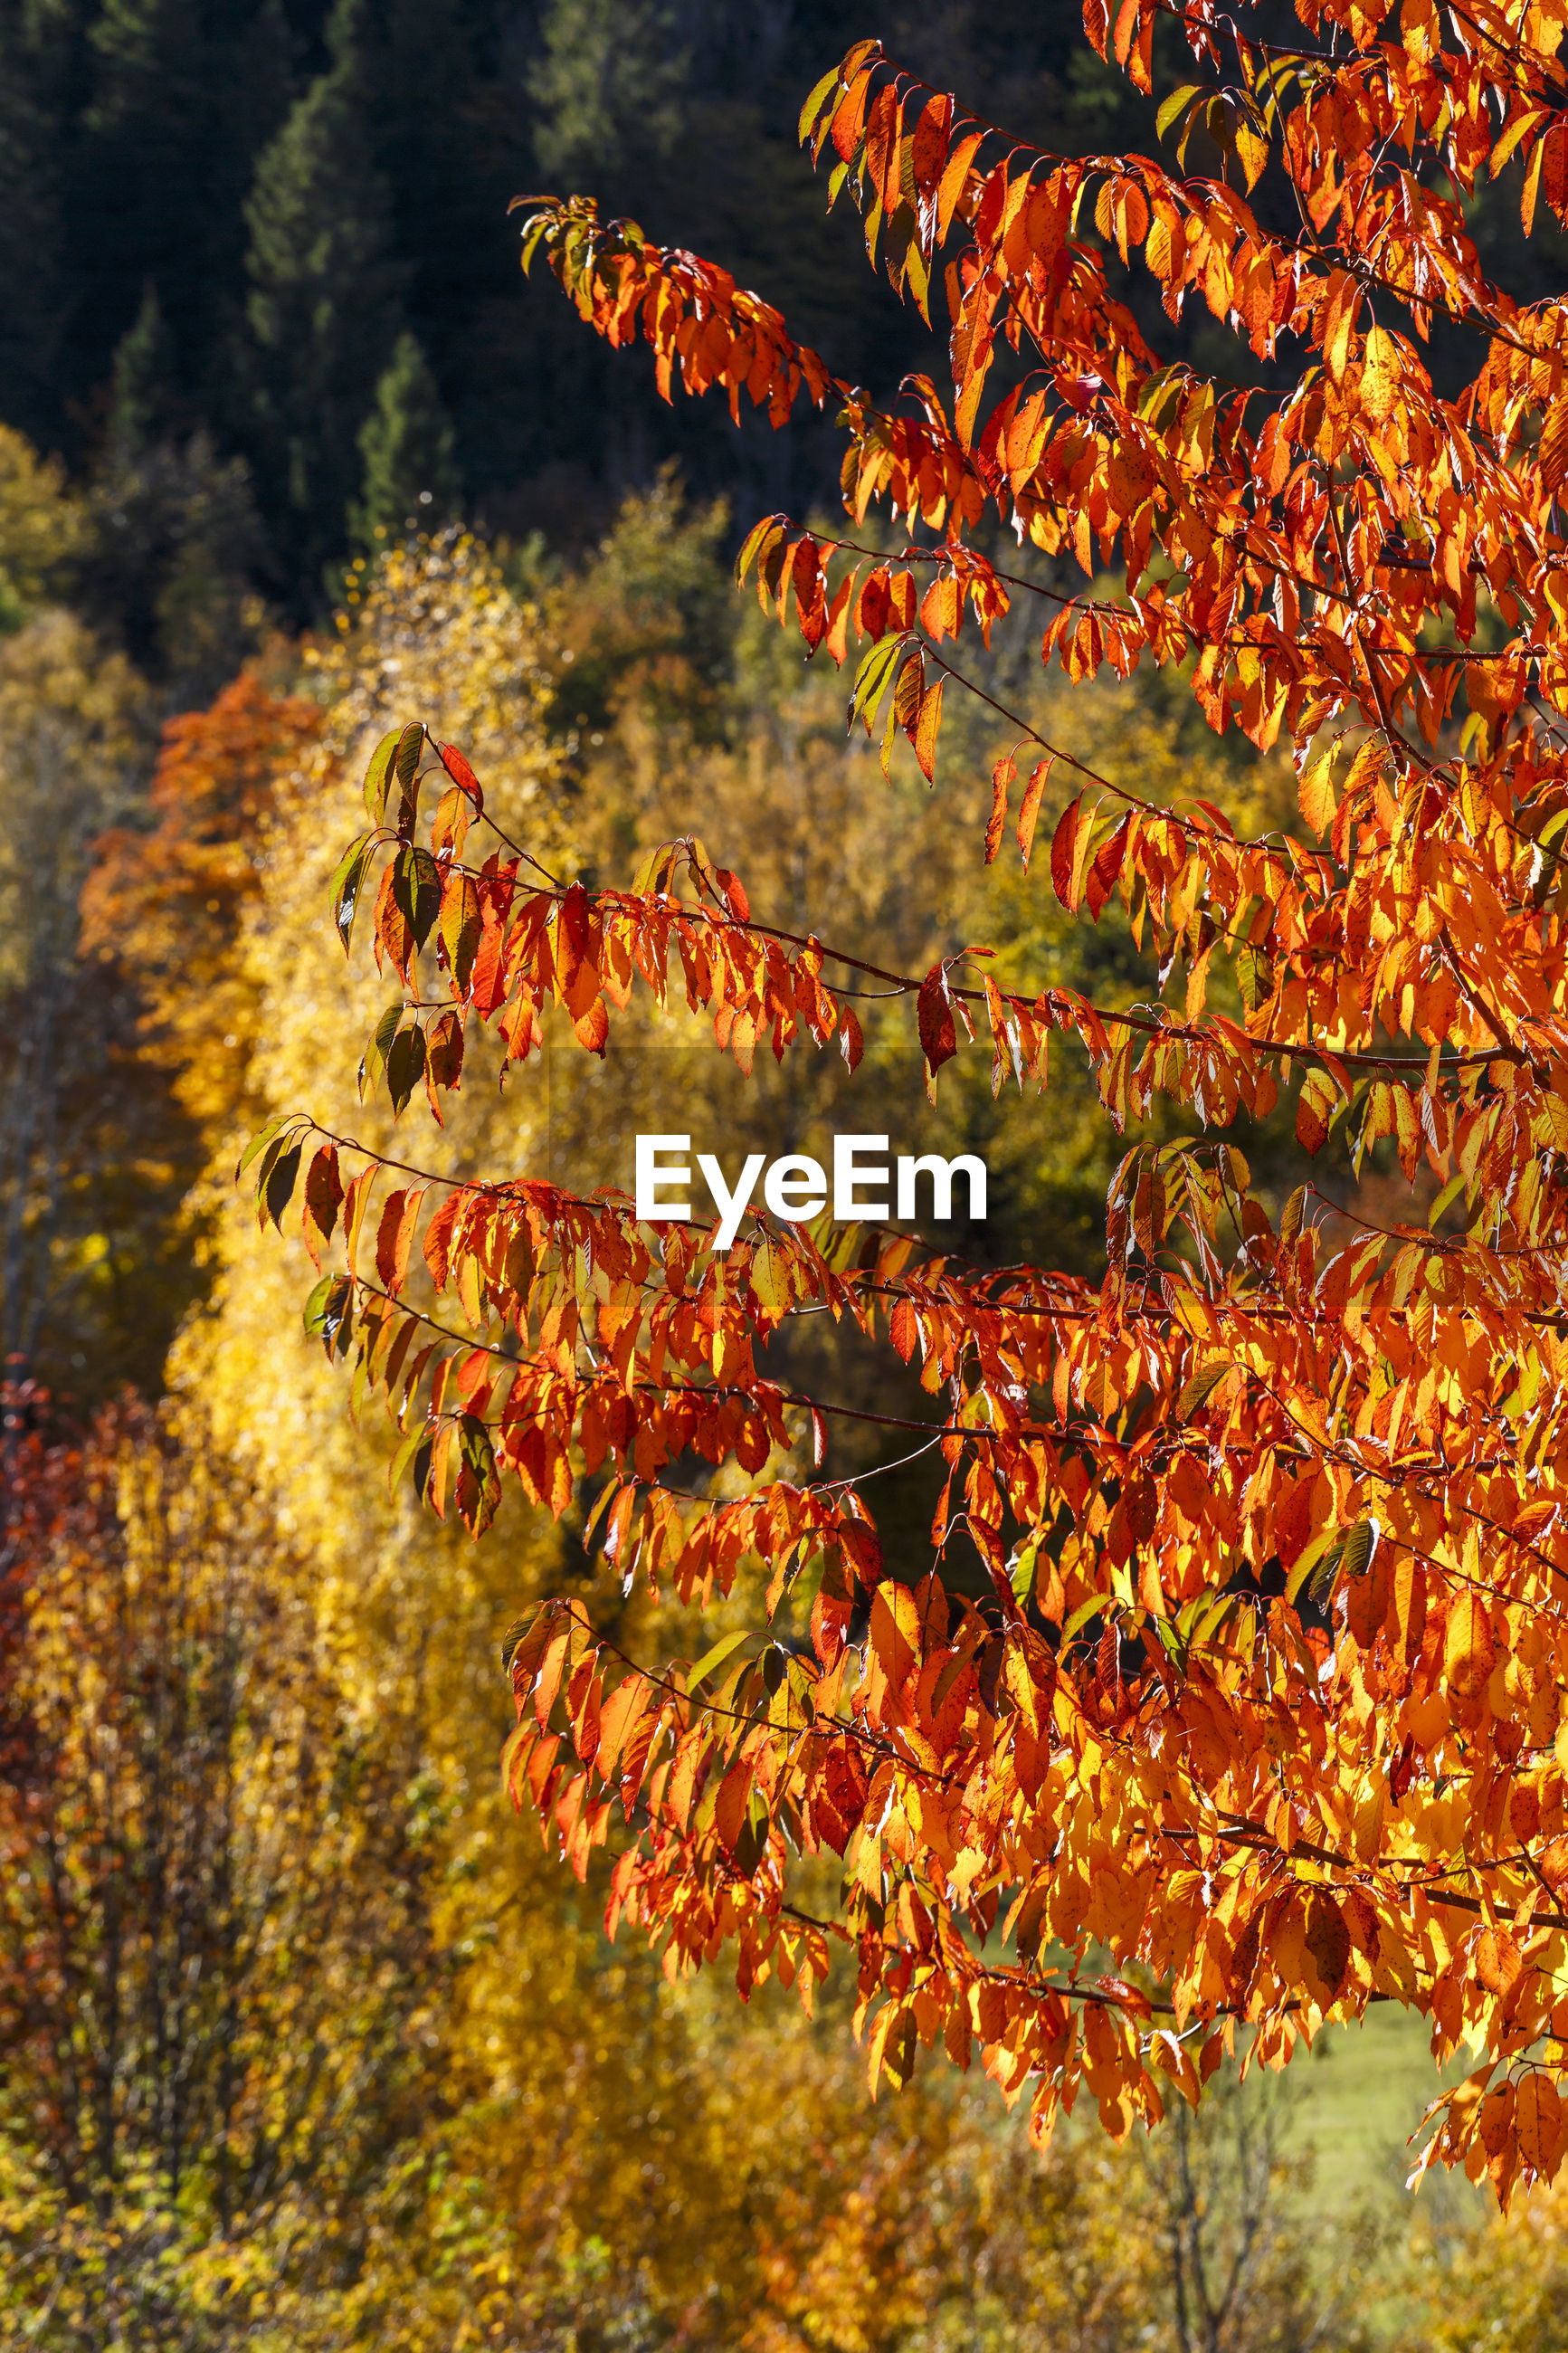 CLOSE-UP OF AUTUMN LEAVES AGAINST TREES